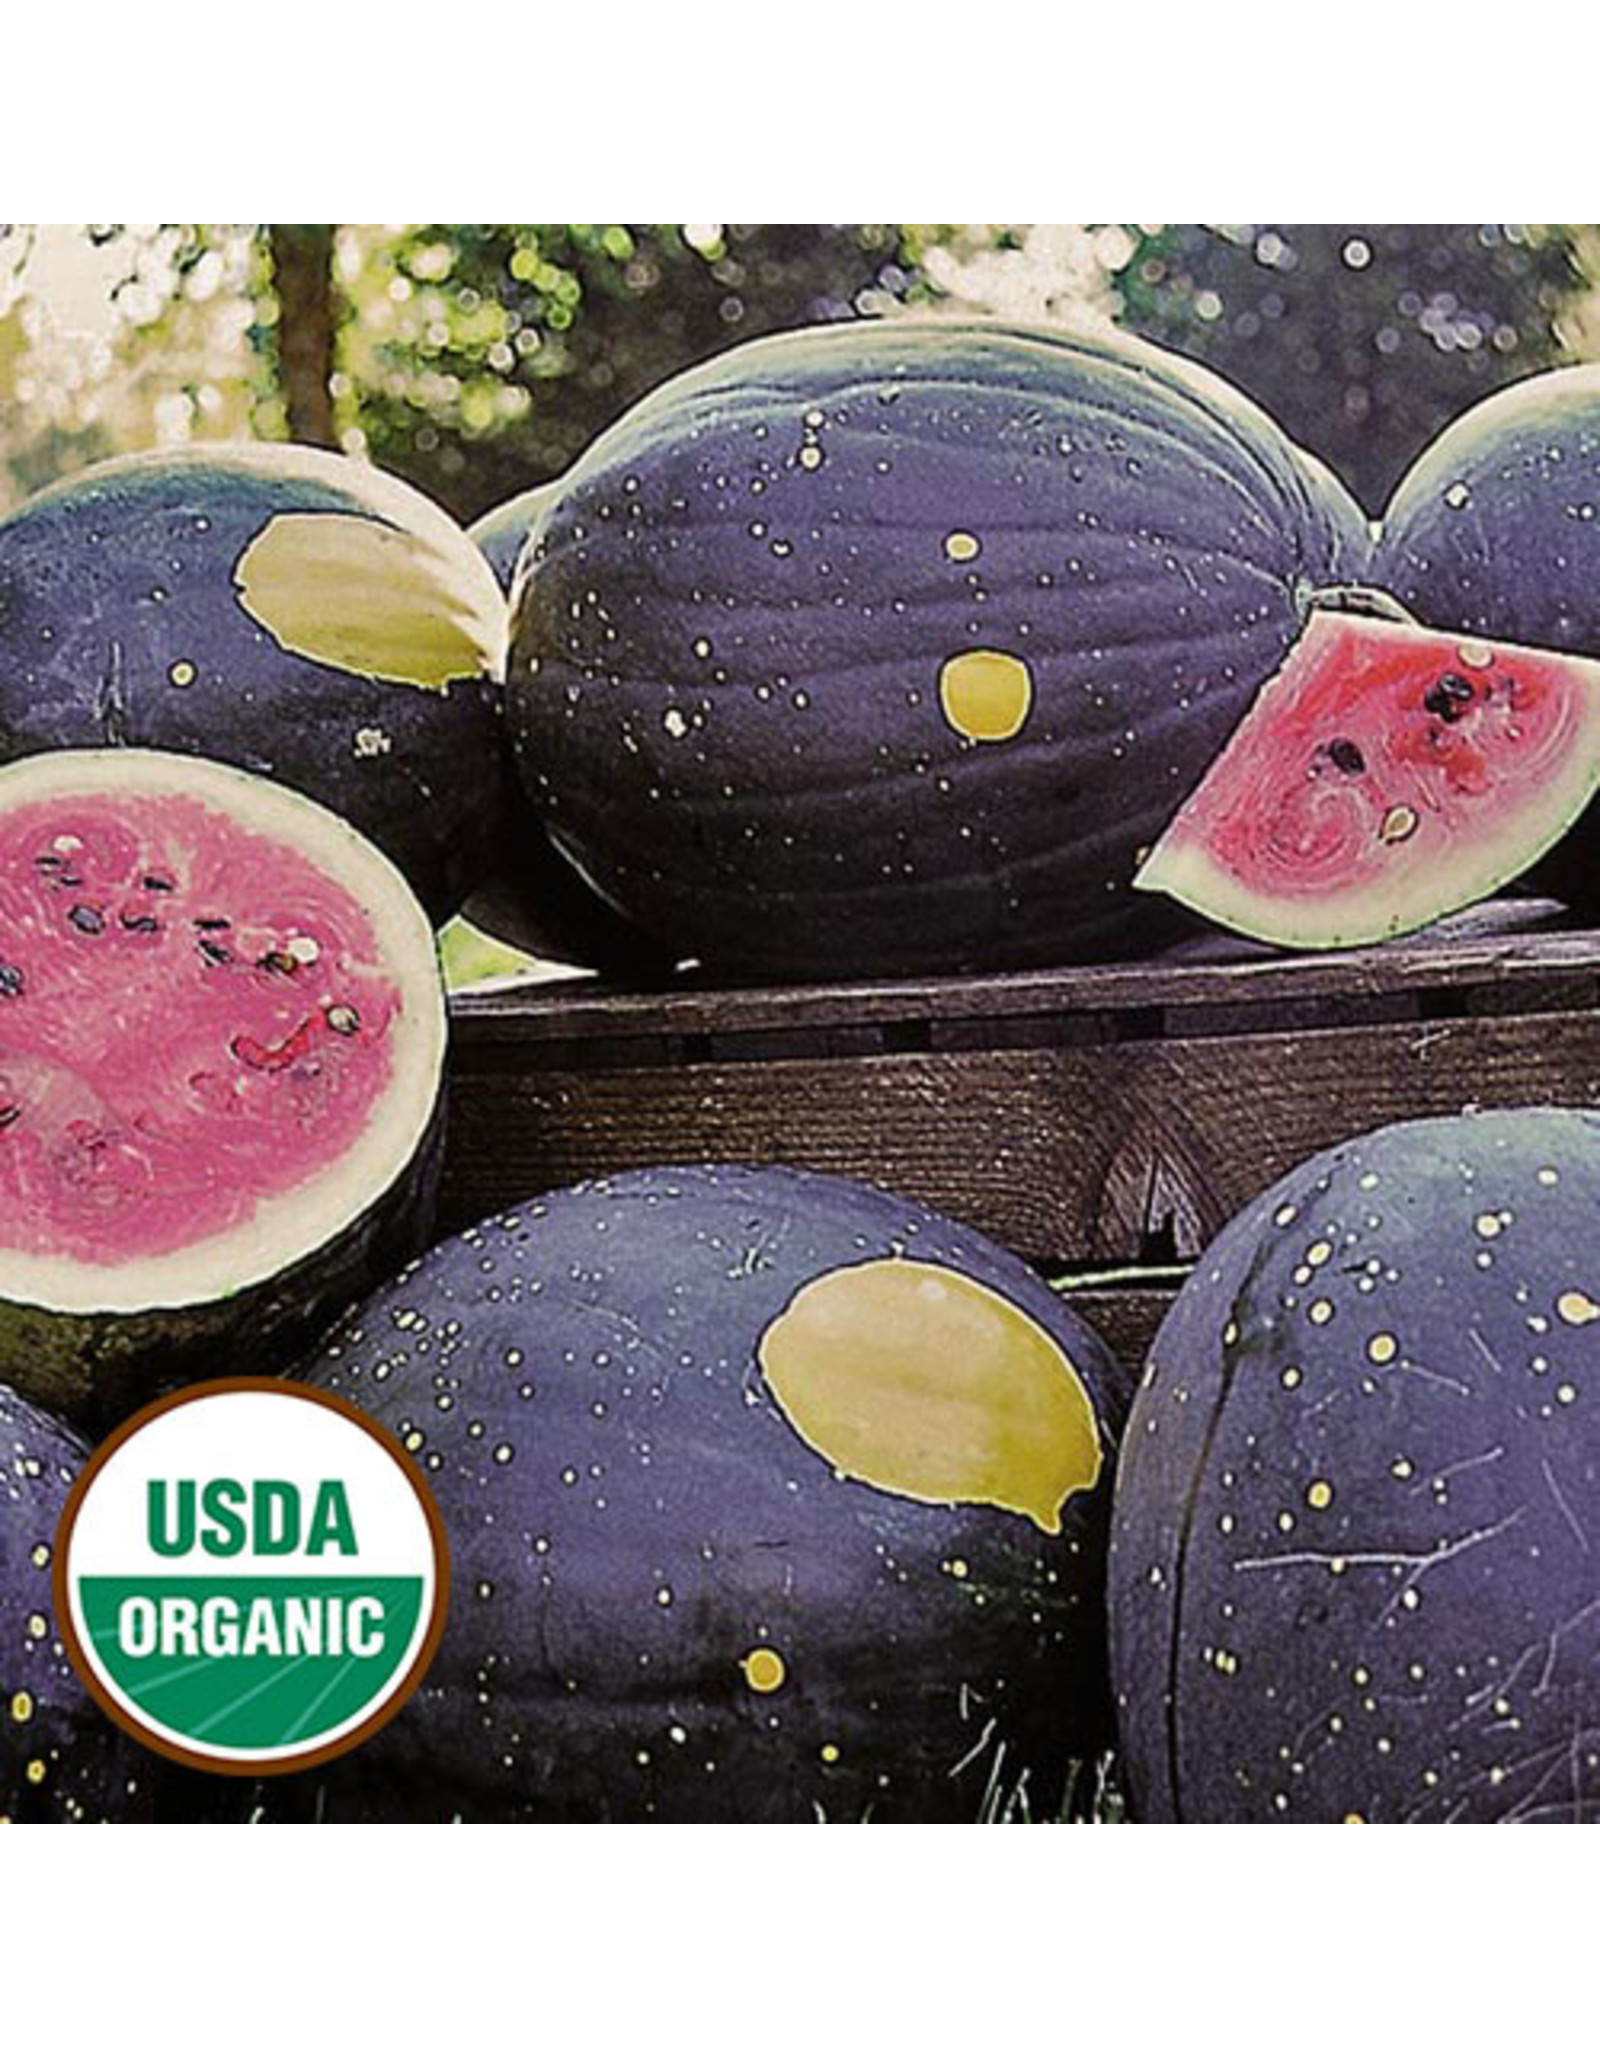 Seed Savers Watermelon - Moon and Stars (Van Doren)